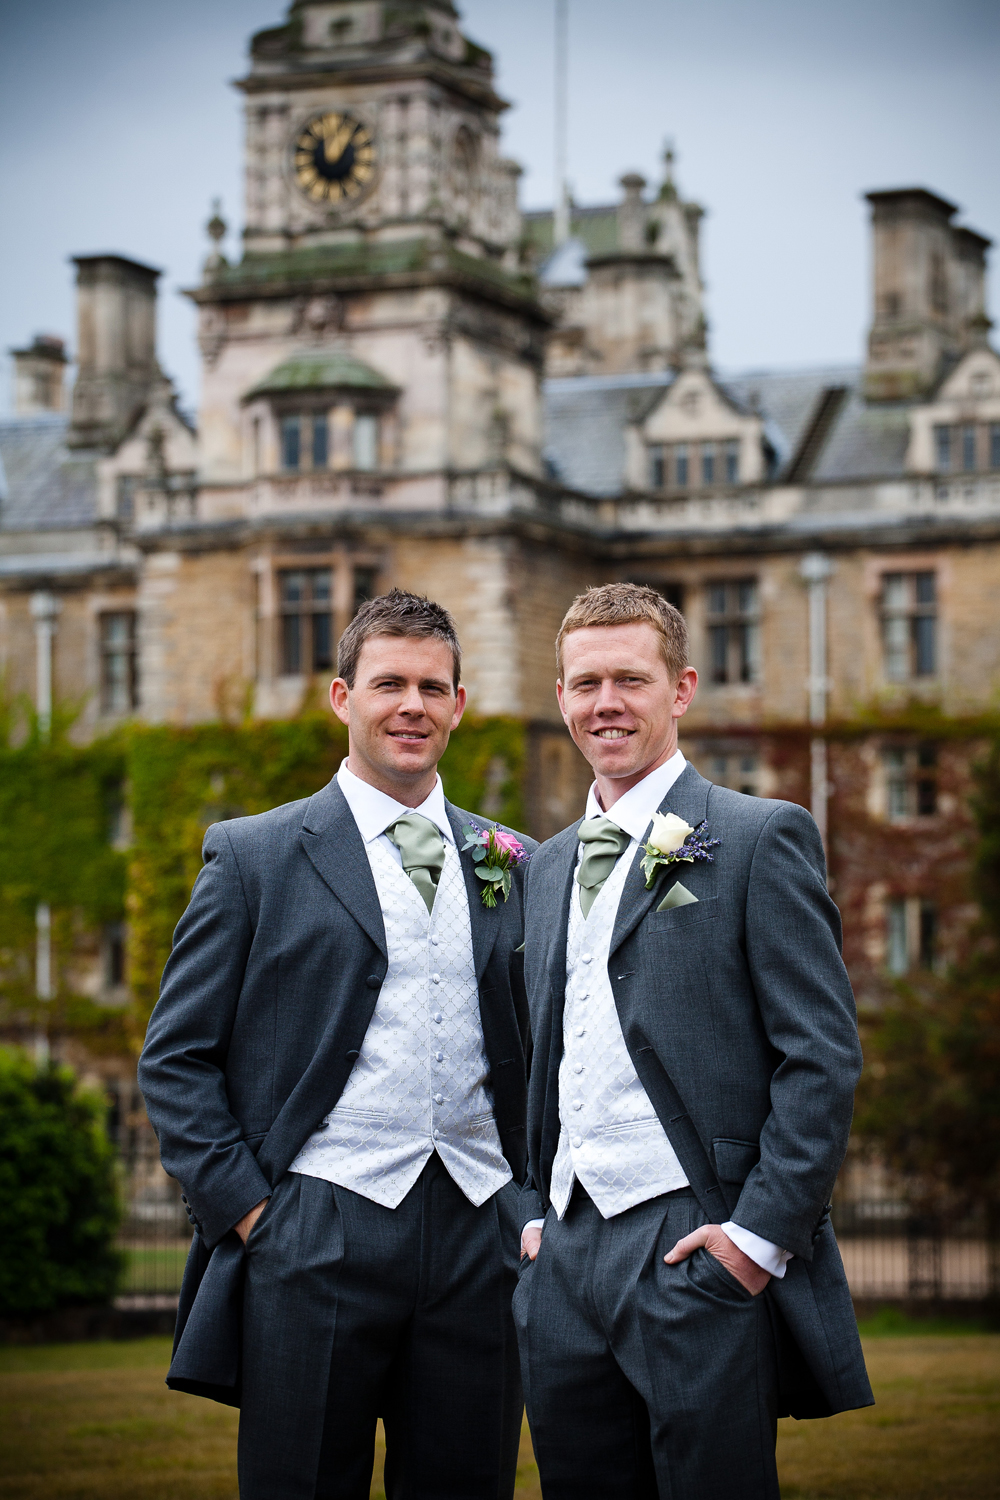 Wedding+photographers+in+sheffield,+Rotherham+Yorkshire+(10).jpg